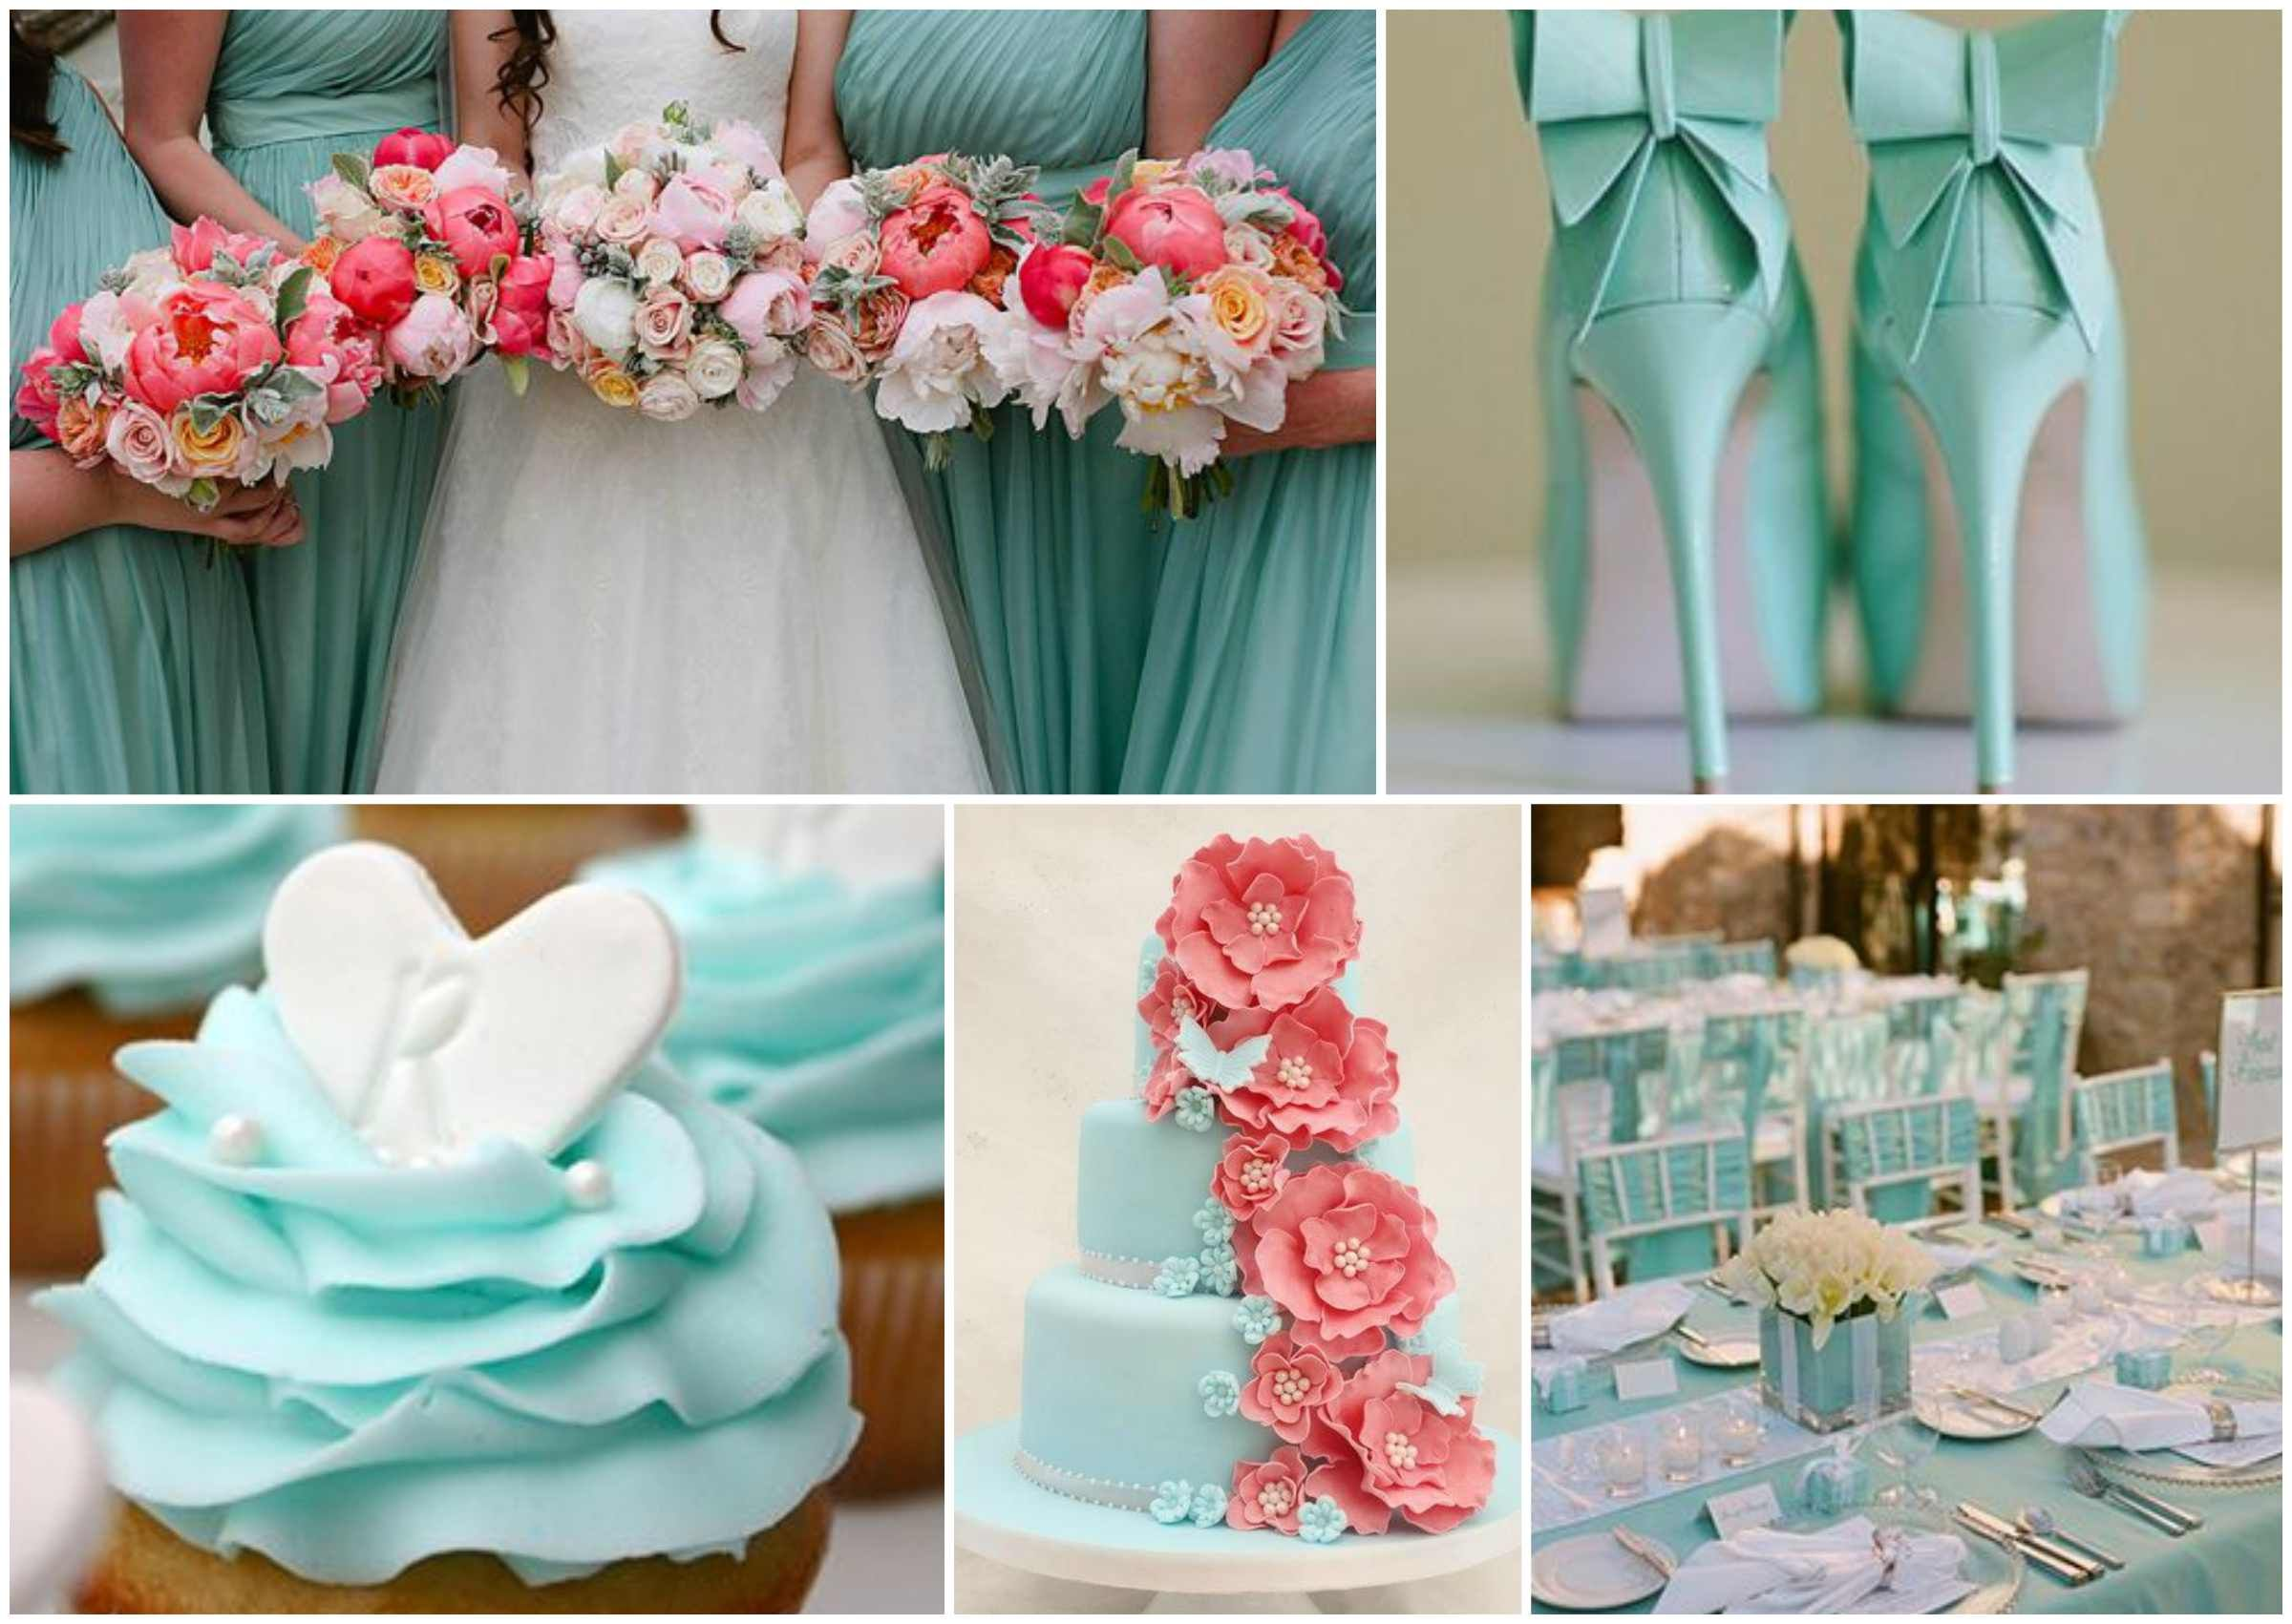 How gorgeous is this contrast between the pale tiffany blue and vibrant coral colours. Perfect for a spring wedding!